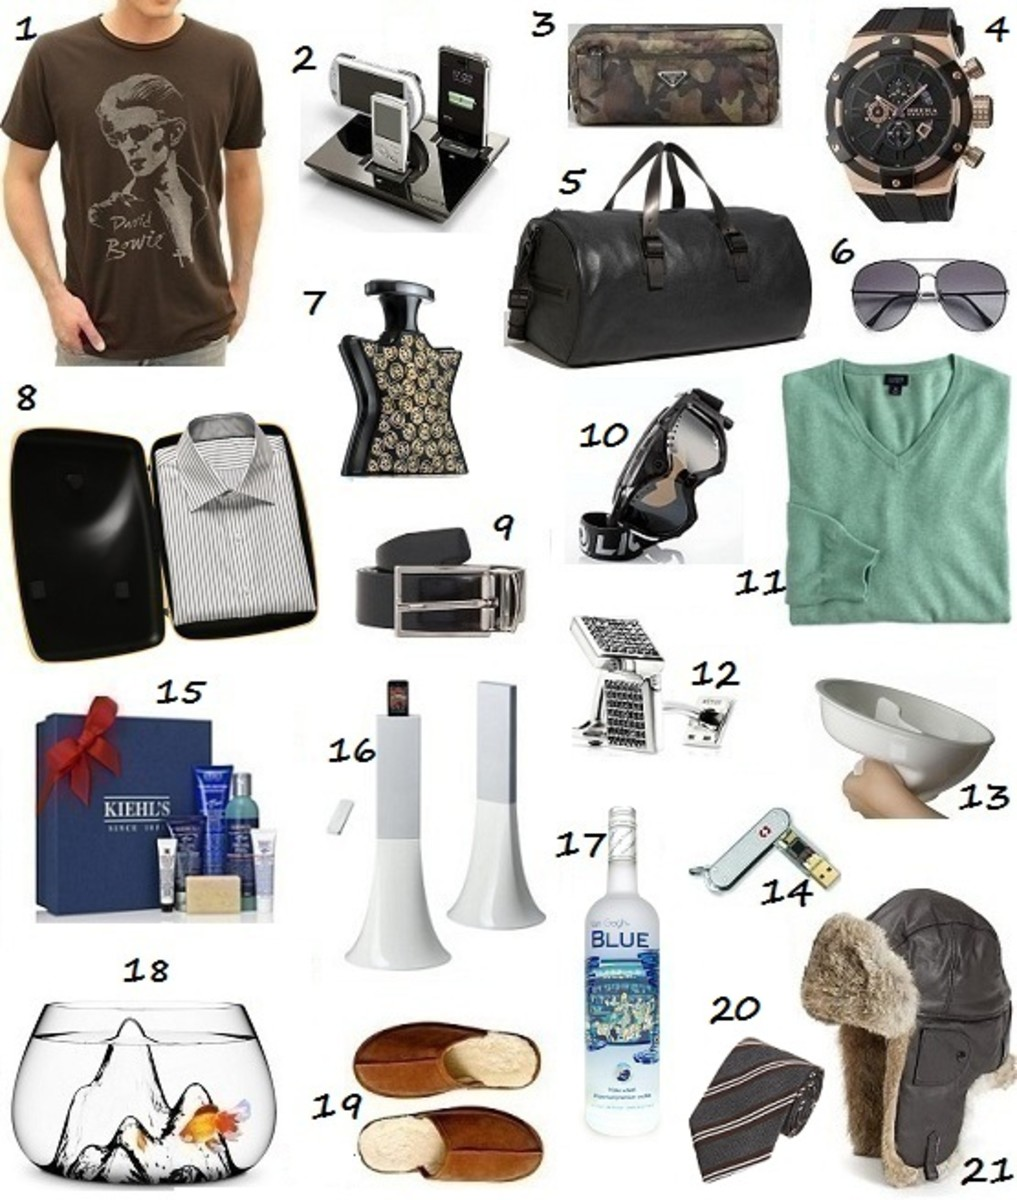 Glamamom's Holiday 2011 Glam Gift Ideas for Him